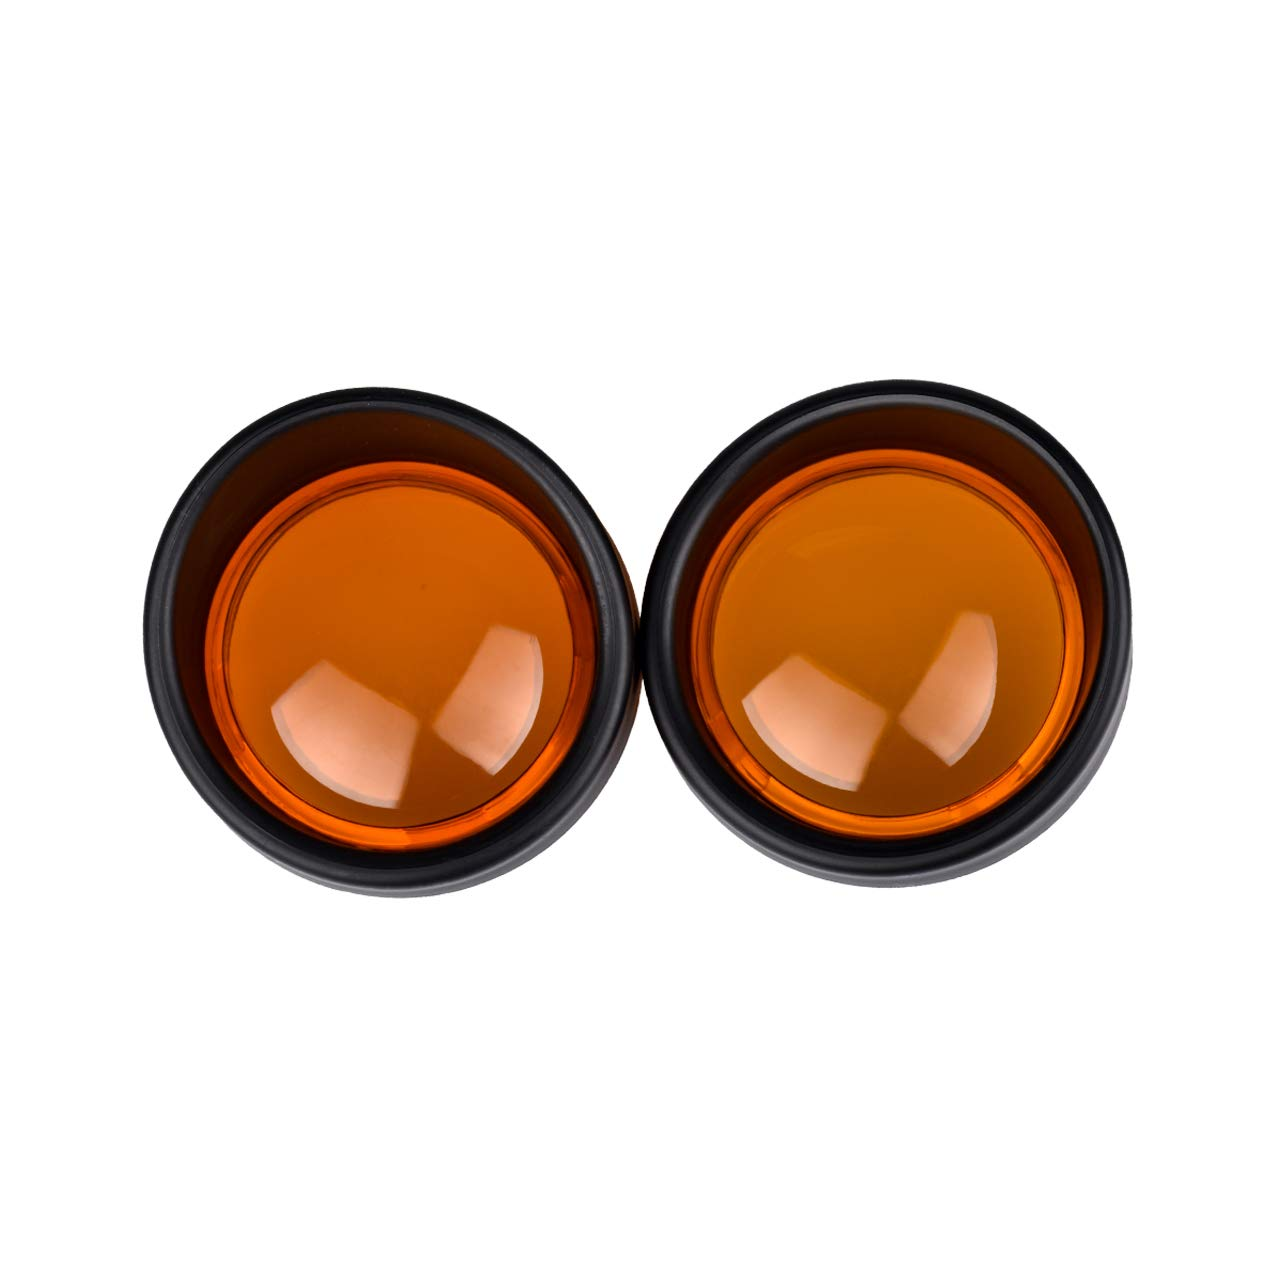 Pack of 2 TUINCYN Black Motorcycle Turn Signal Bezels Visor-Style with Orange Lens Cover for Harley Sportster 883 1200 XL 48 72 Fatboy Dyna V-Rod Breakout Softail FLST//FLSTC